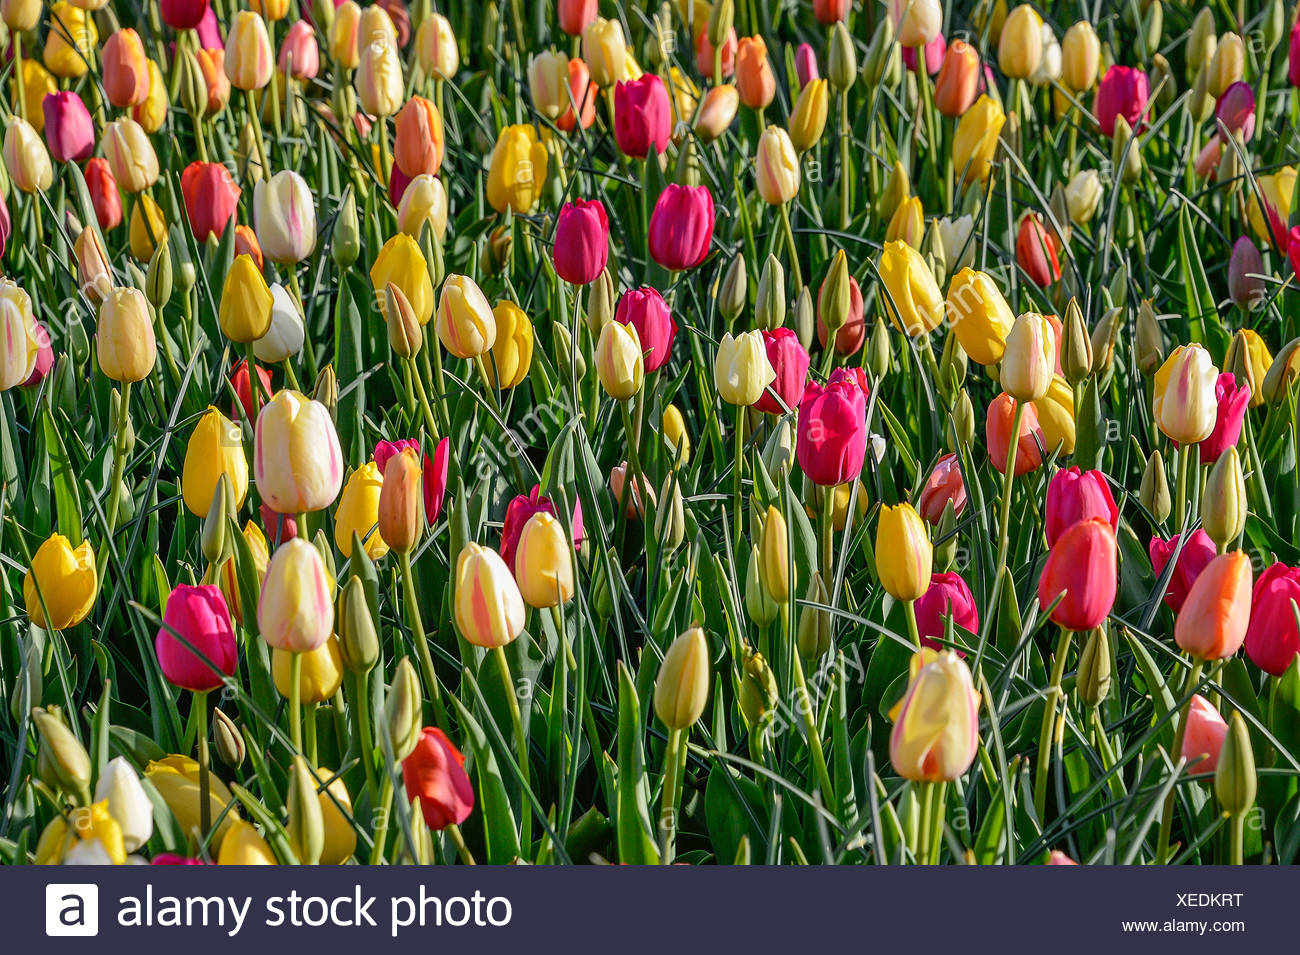 Tulips in bloom. - Stock Image